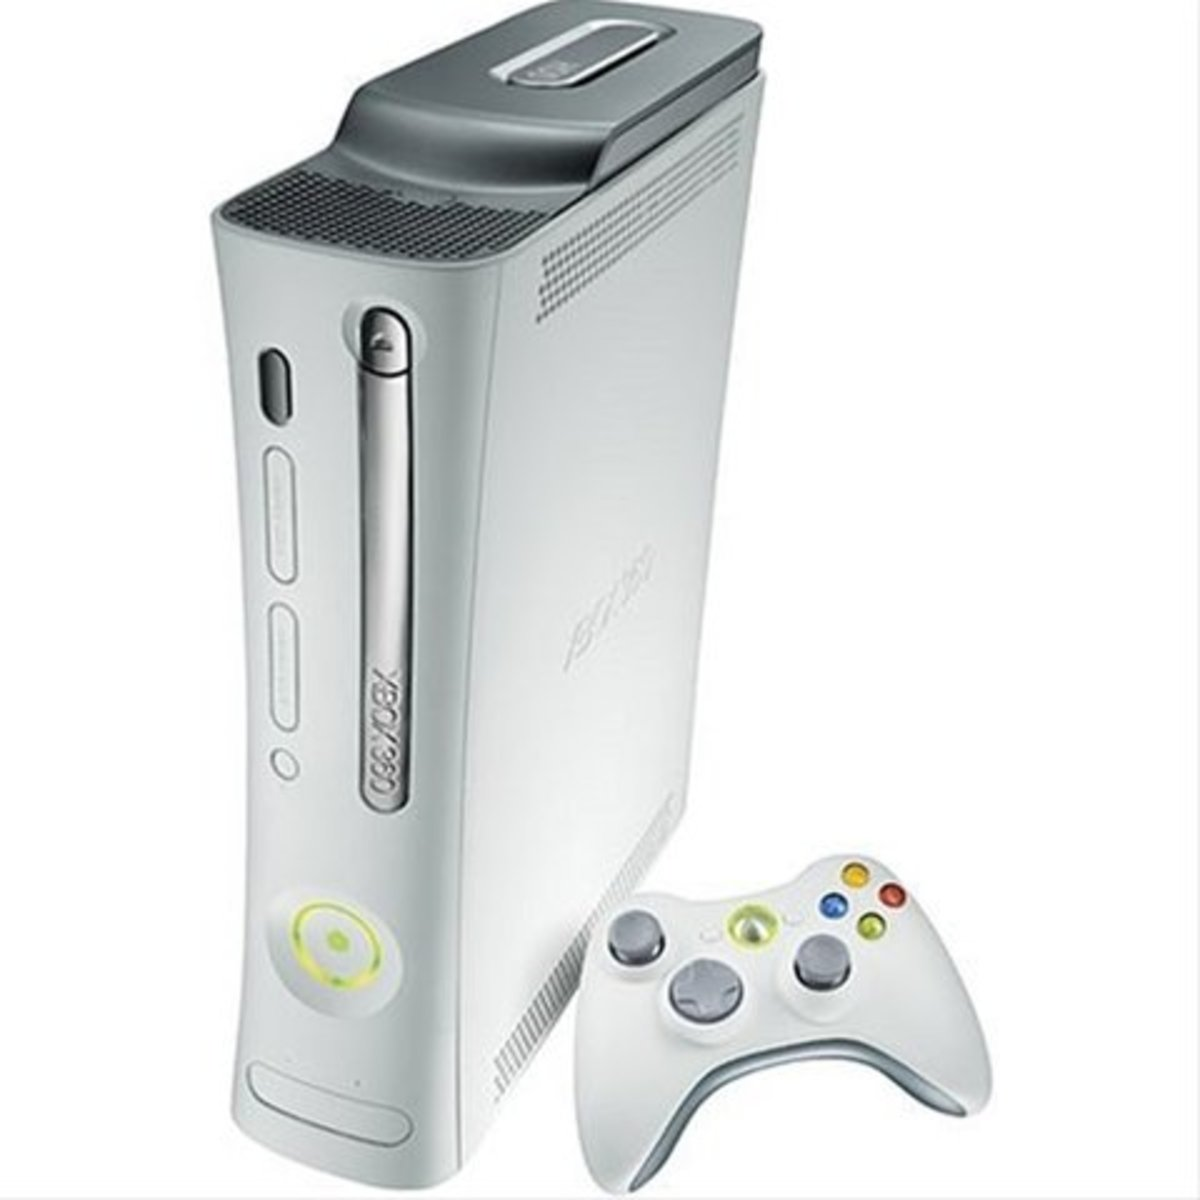 How to Stop Your Xbox 360 From Freezing